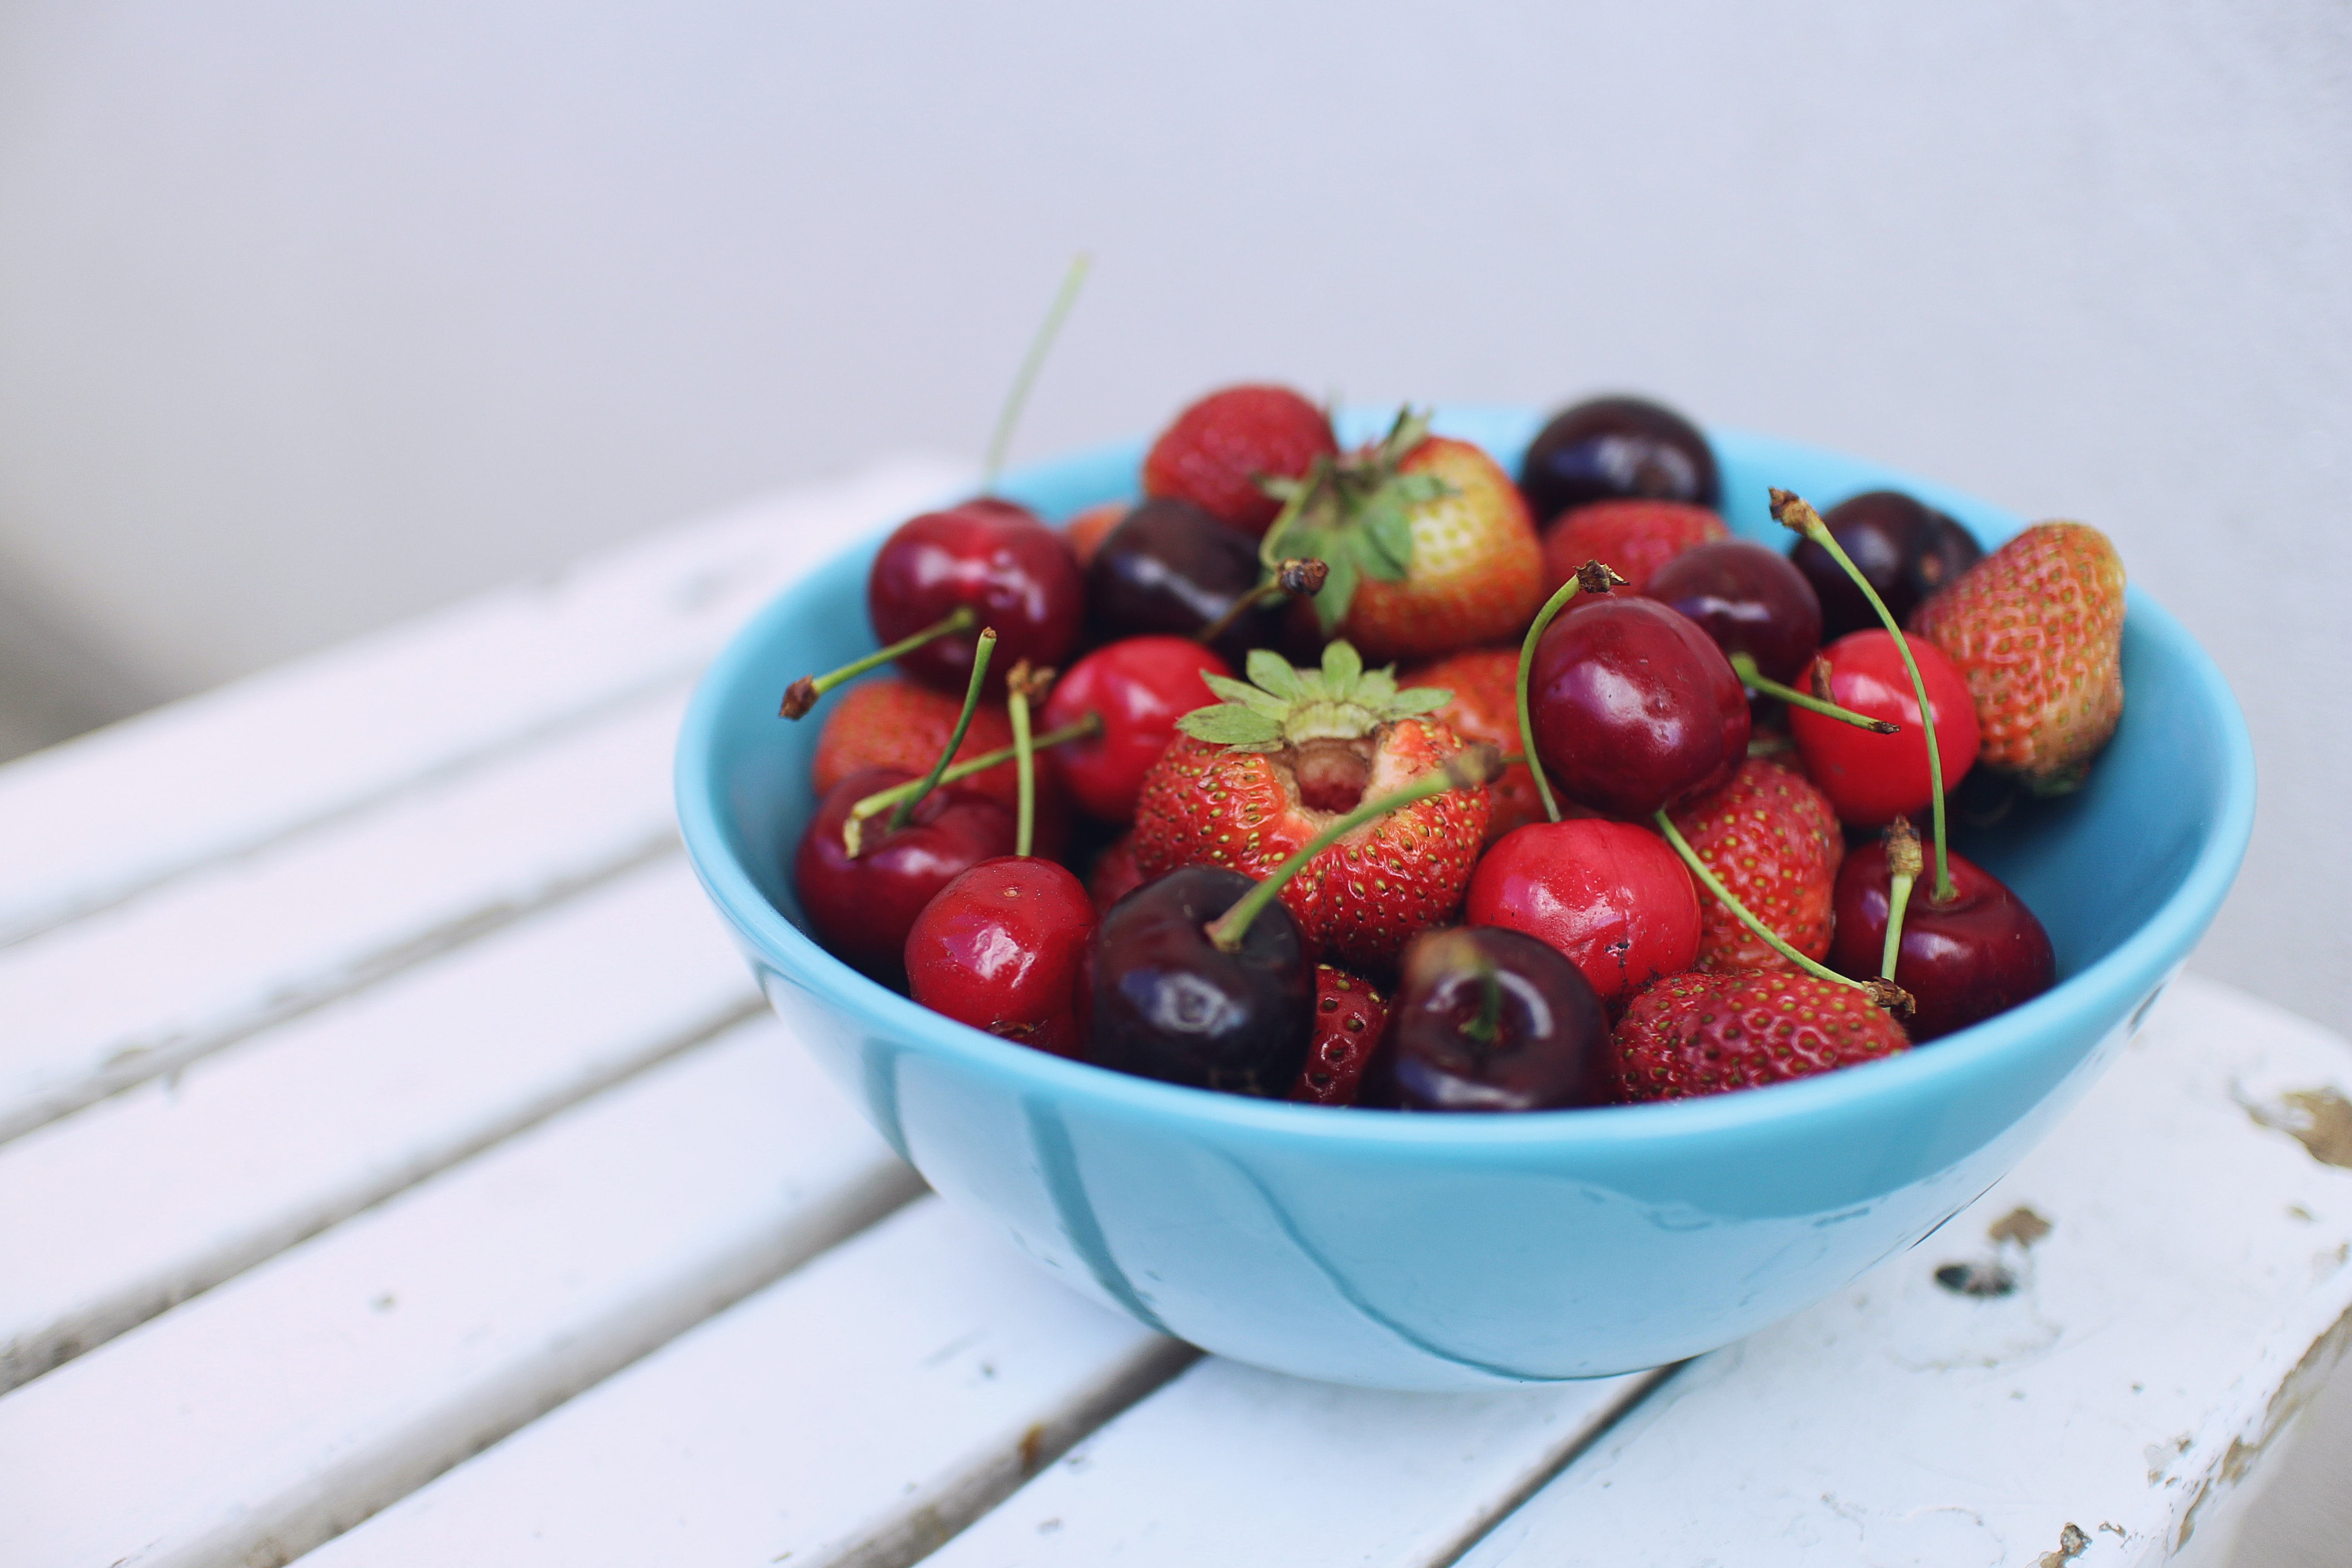 Bowl of fresh cherries, strawberries, and fruit